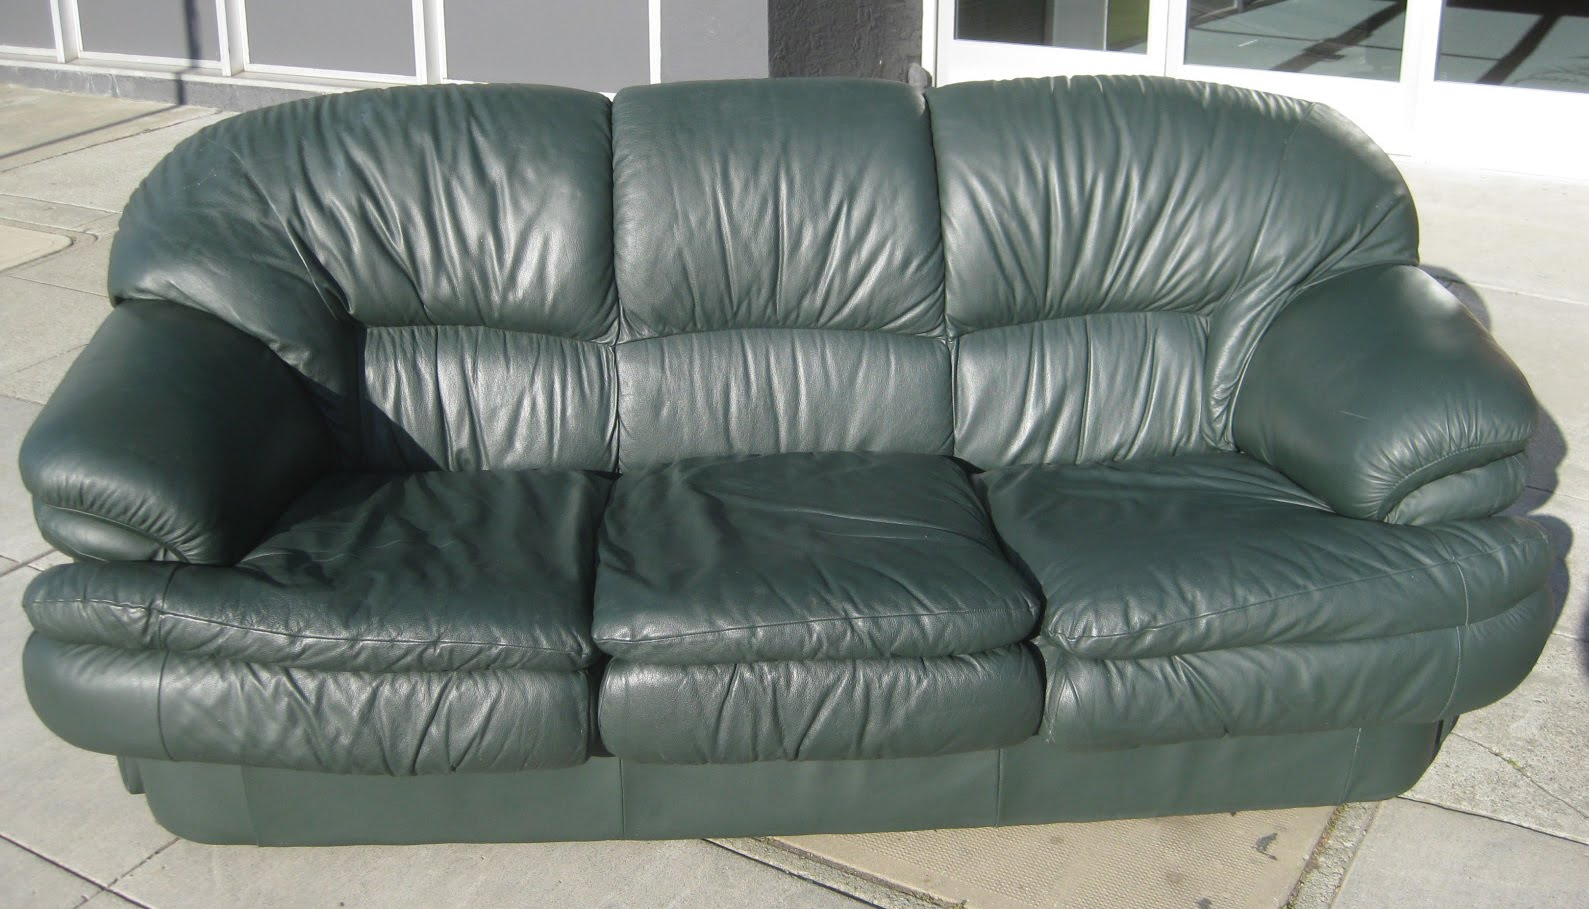 Uhuru Furniture Amp Collectibles Sold Green Leather Sofa